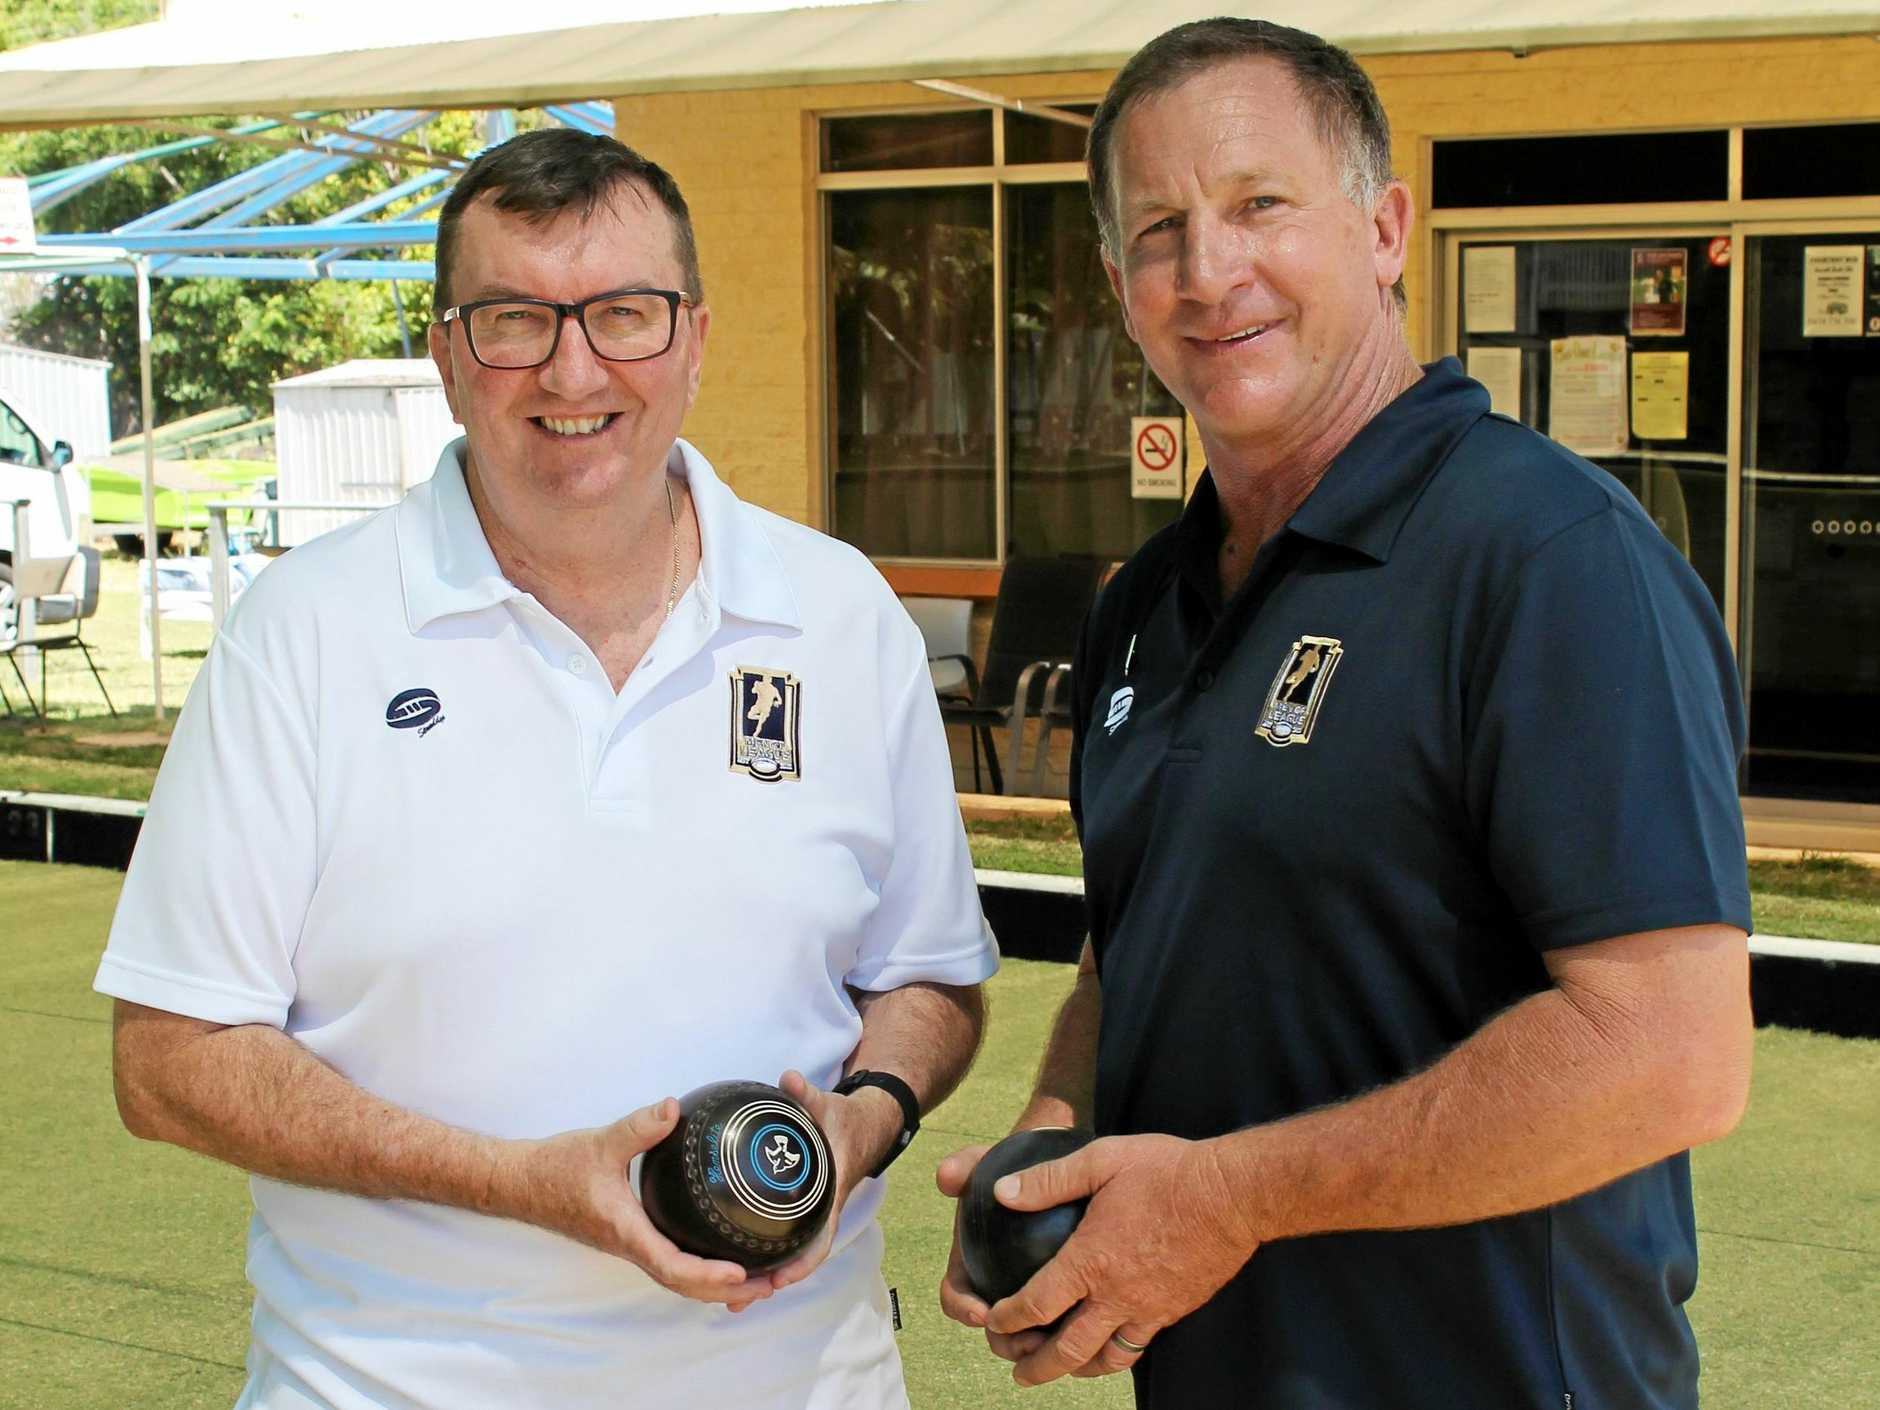 BOWLED OVER: MOL QLD Wellbeing manager Mark Bunting with CH MOL patron Alan McIndoe. INSET: Clint Day from Kestrel Rhinos with CH MOL president Mick Roach.